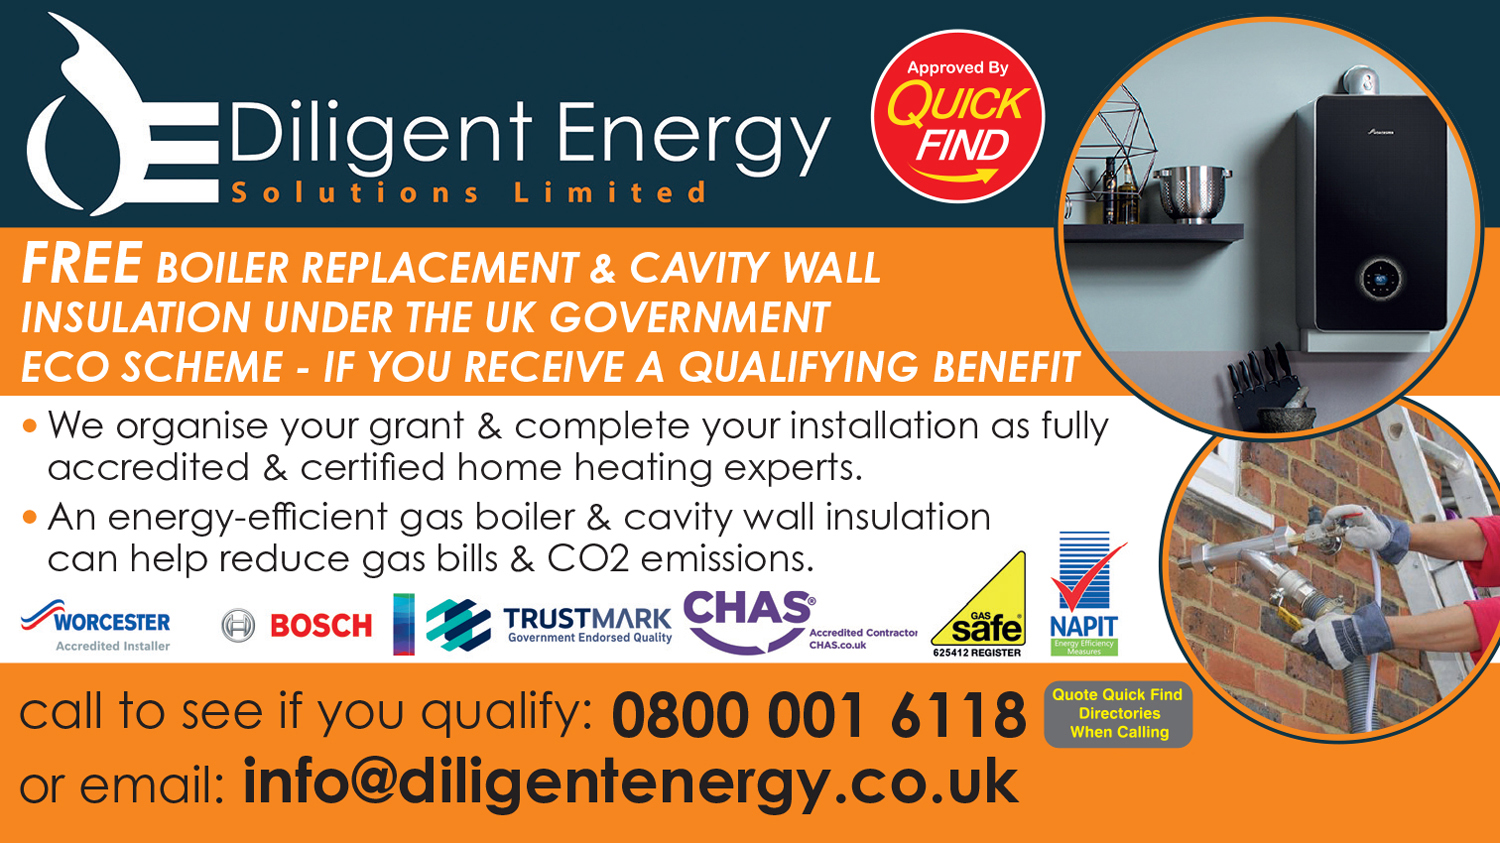 Diligent Energy Solutions Ltd. (Free Boiler Replacement)